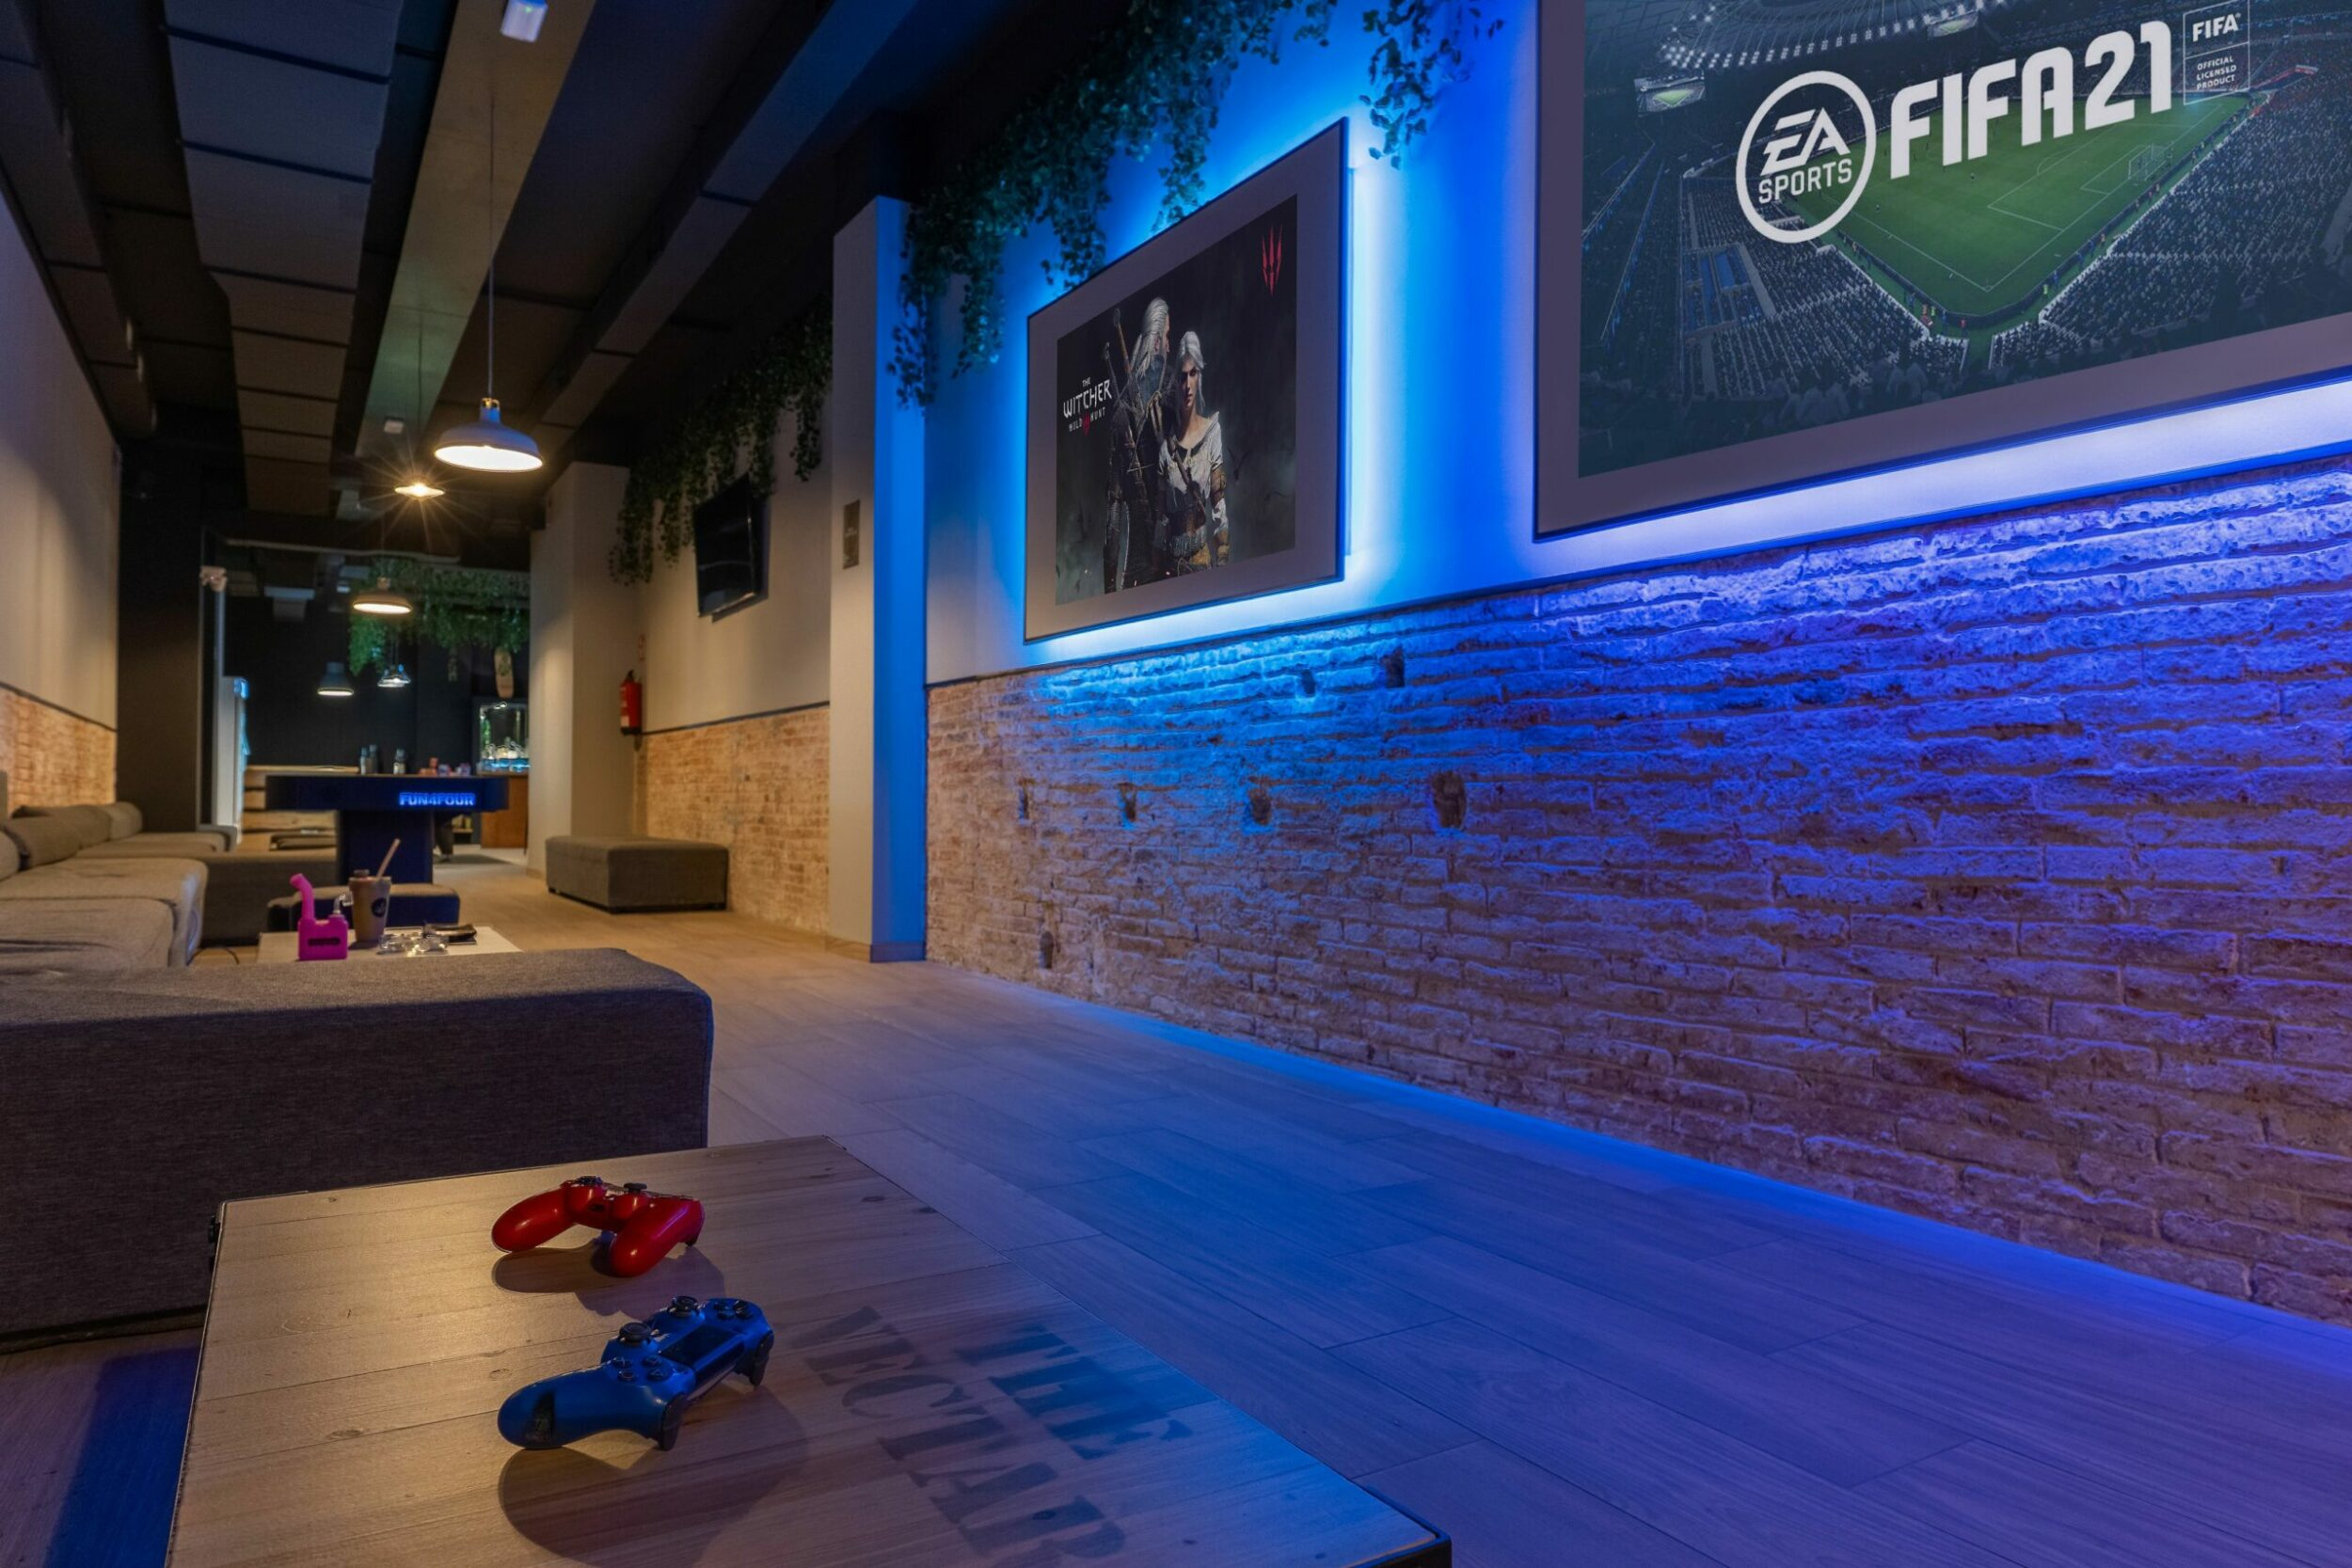 Soft sofas and a Playstation in weed club